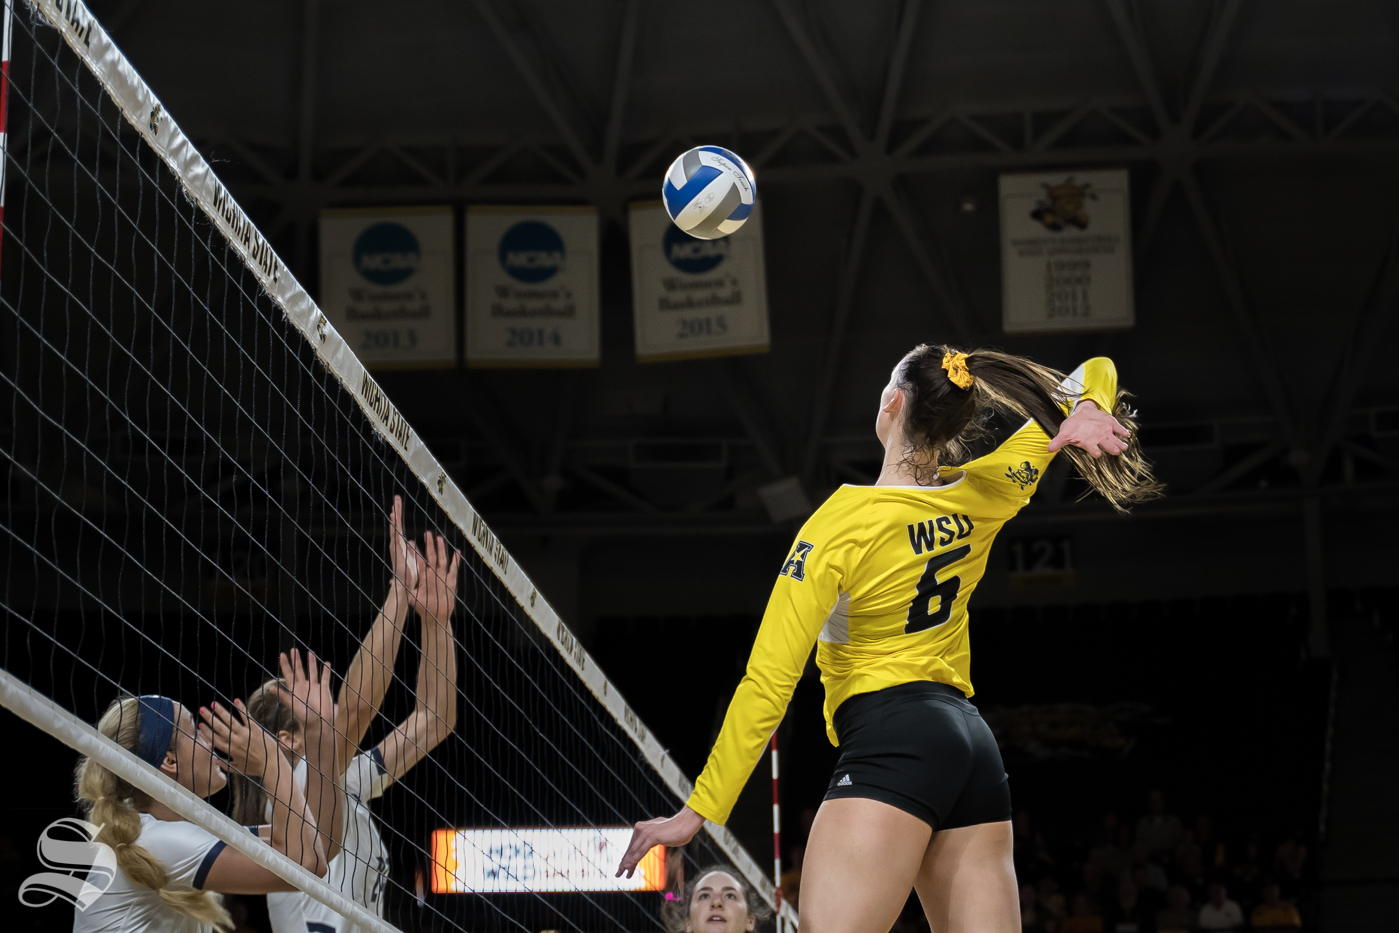 Wichita+State+junior+Emma+Wright+goes+up+for+a+kill+during+the+game+against+BYU.